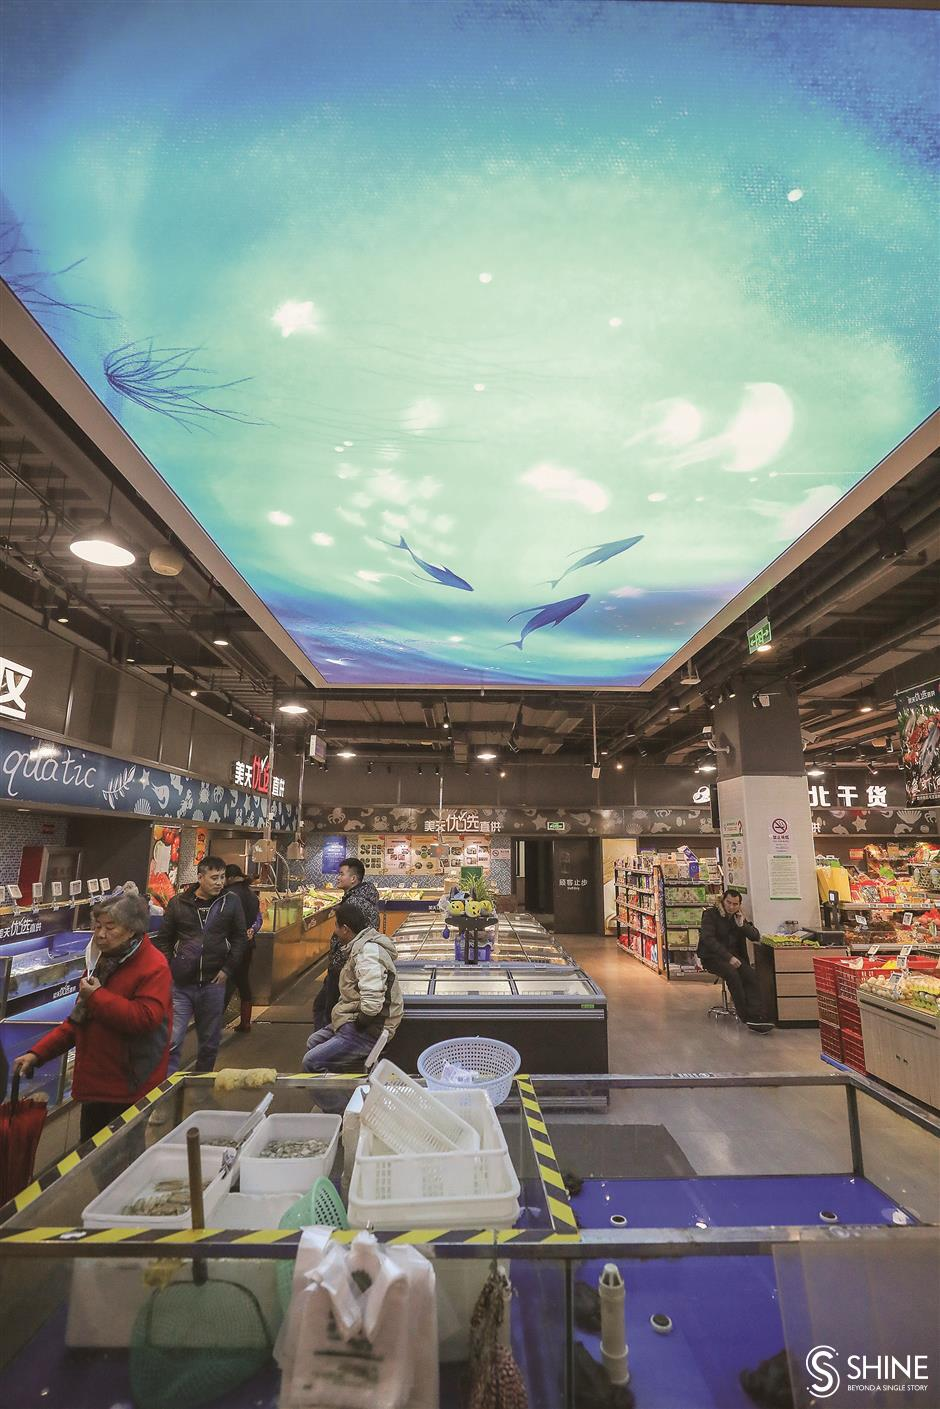 Once dingy wet markets clean up theiract to woo back customers